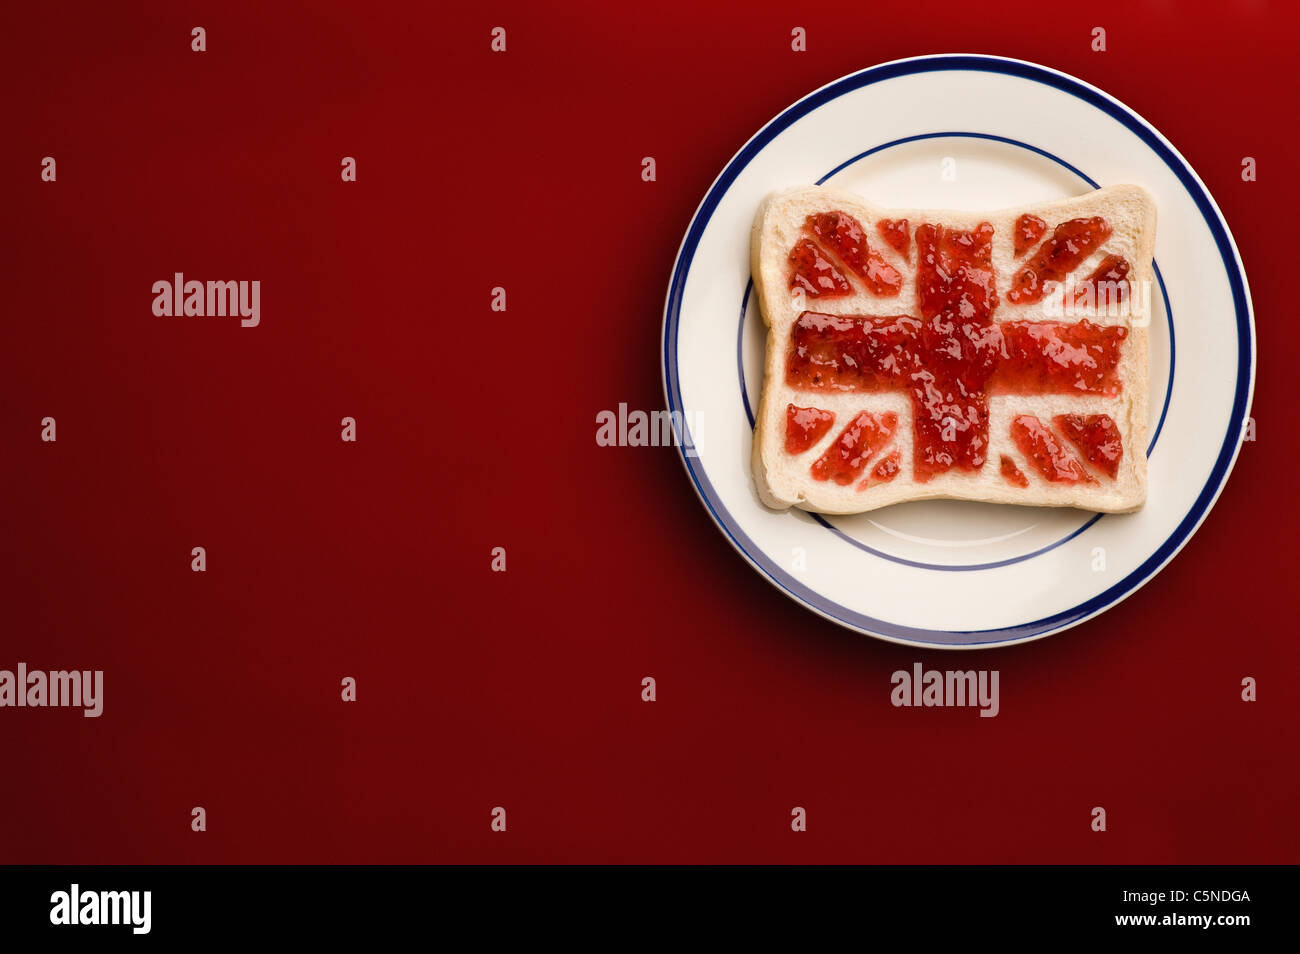 A slice of bread with a union jack flag of strawberry jam - Stock Image